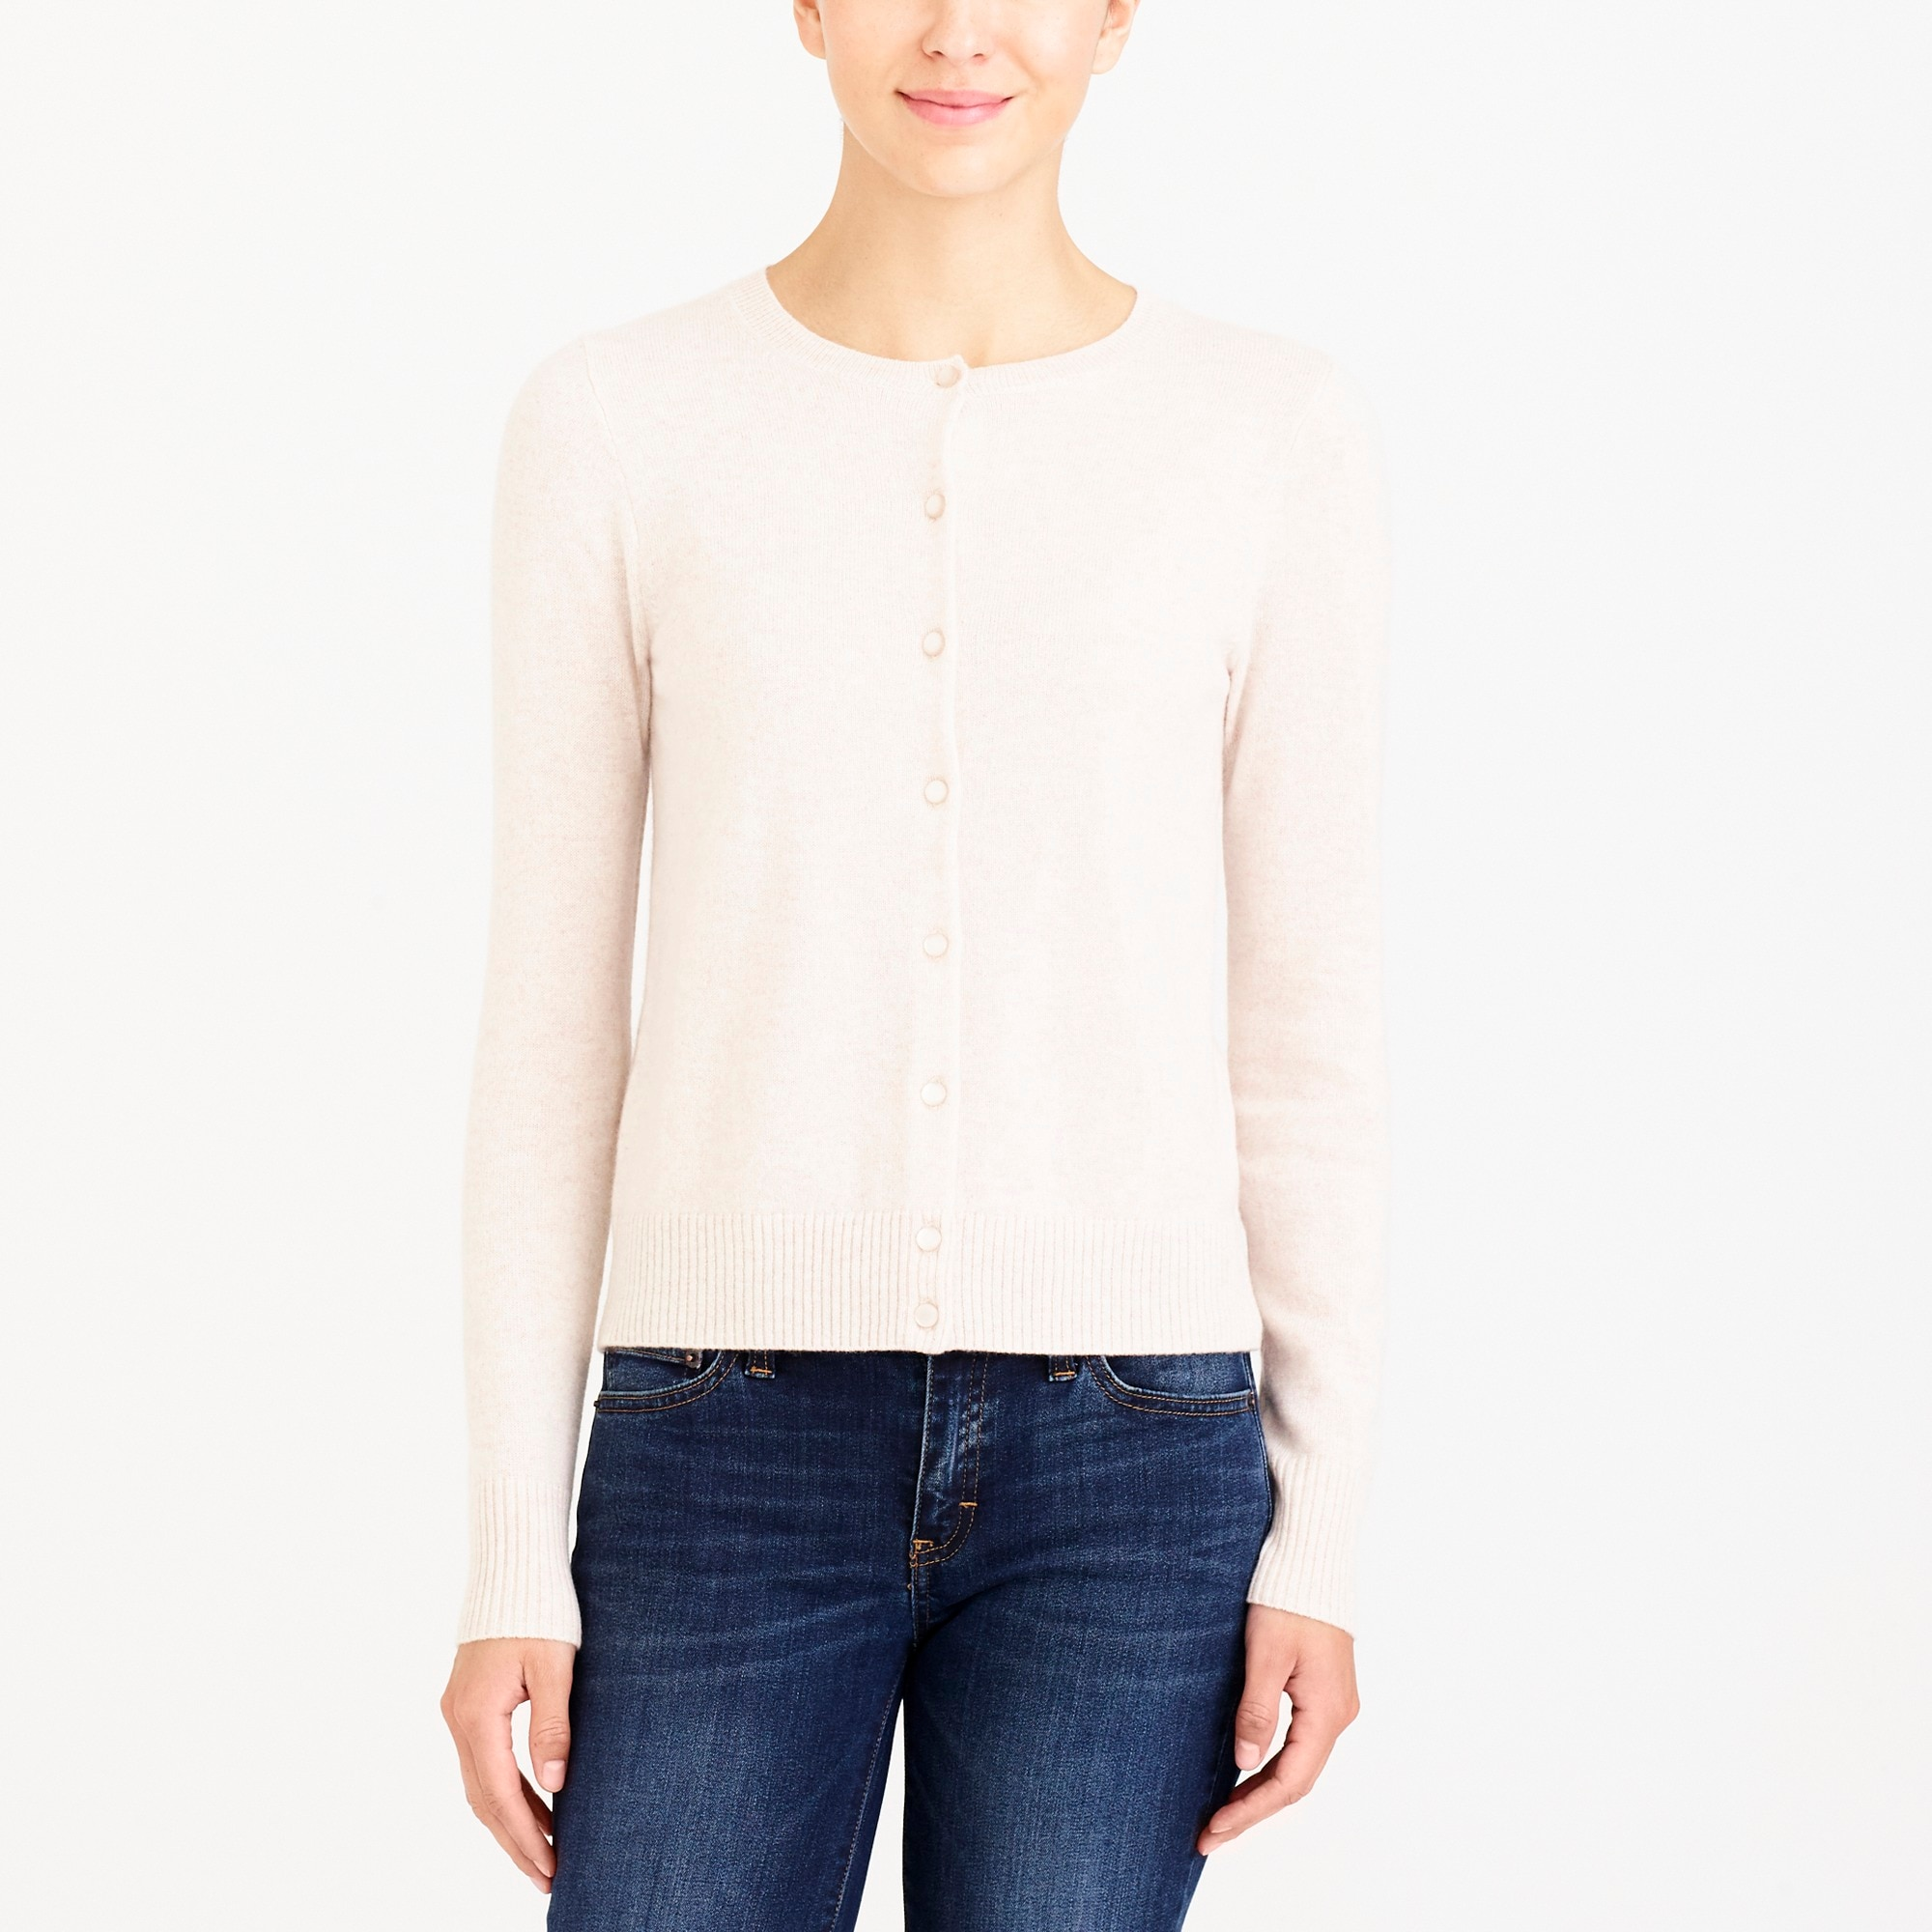 factory womens Cashmere cardigan sweater